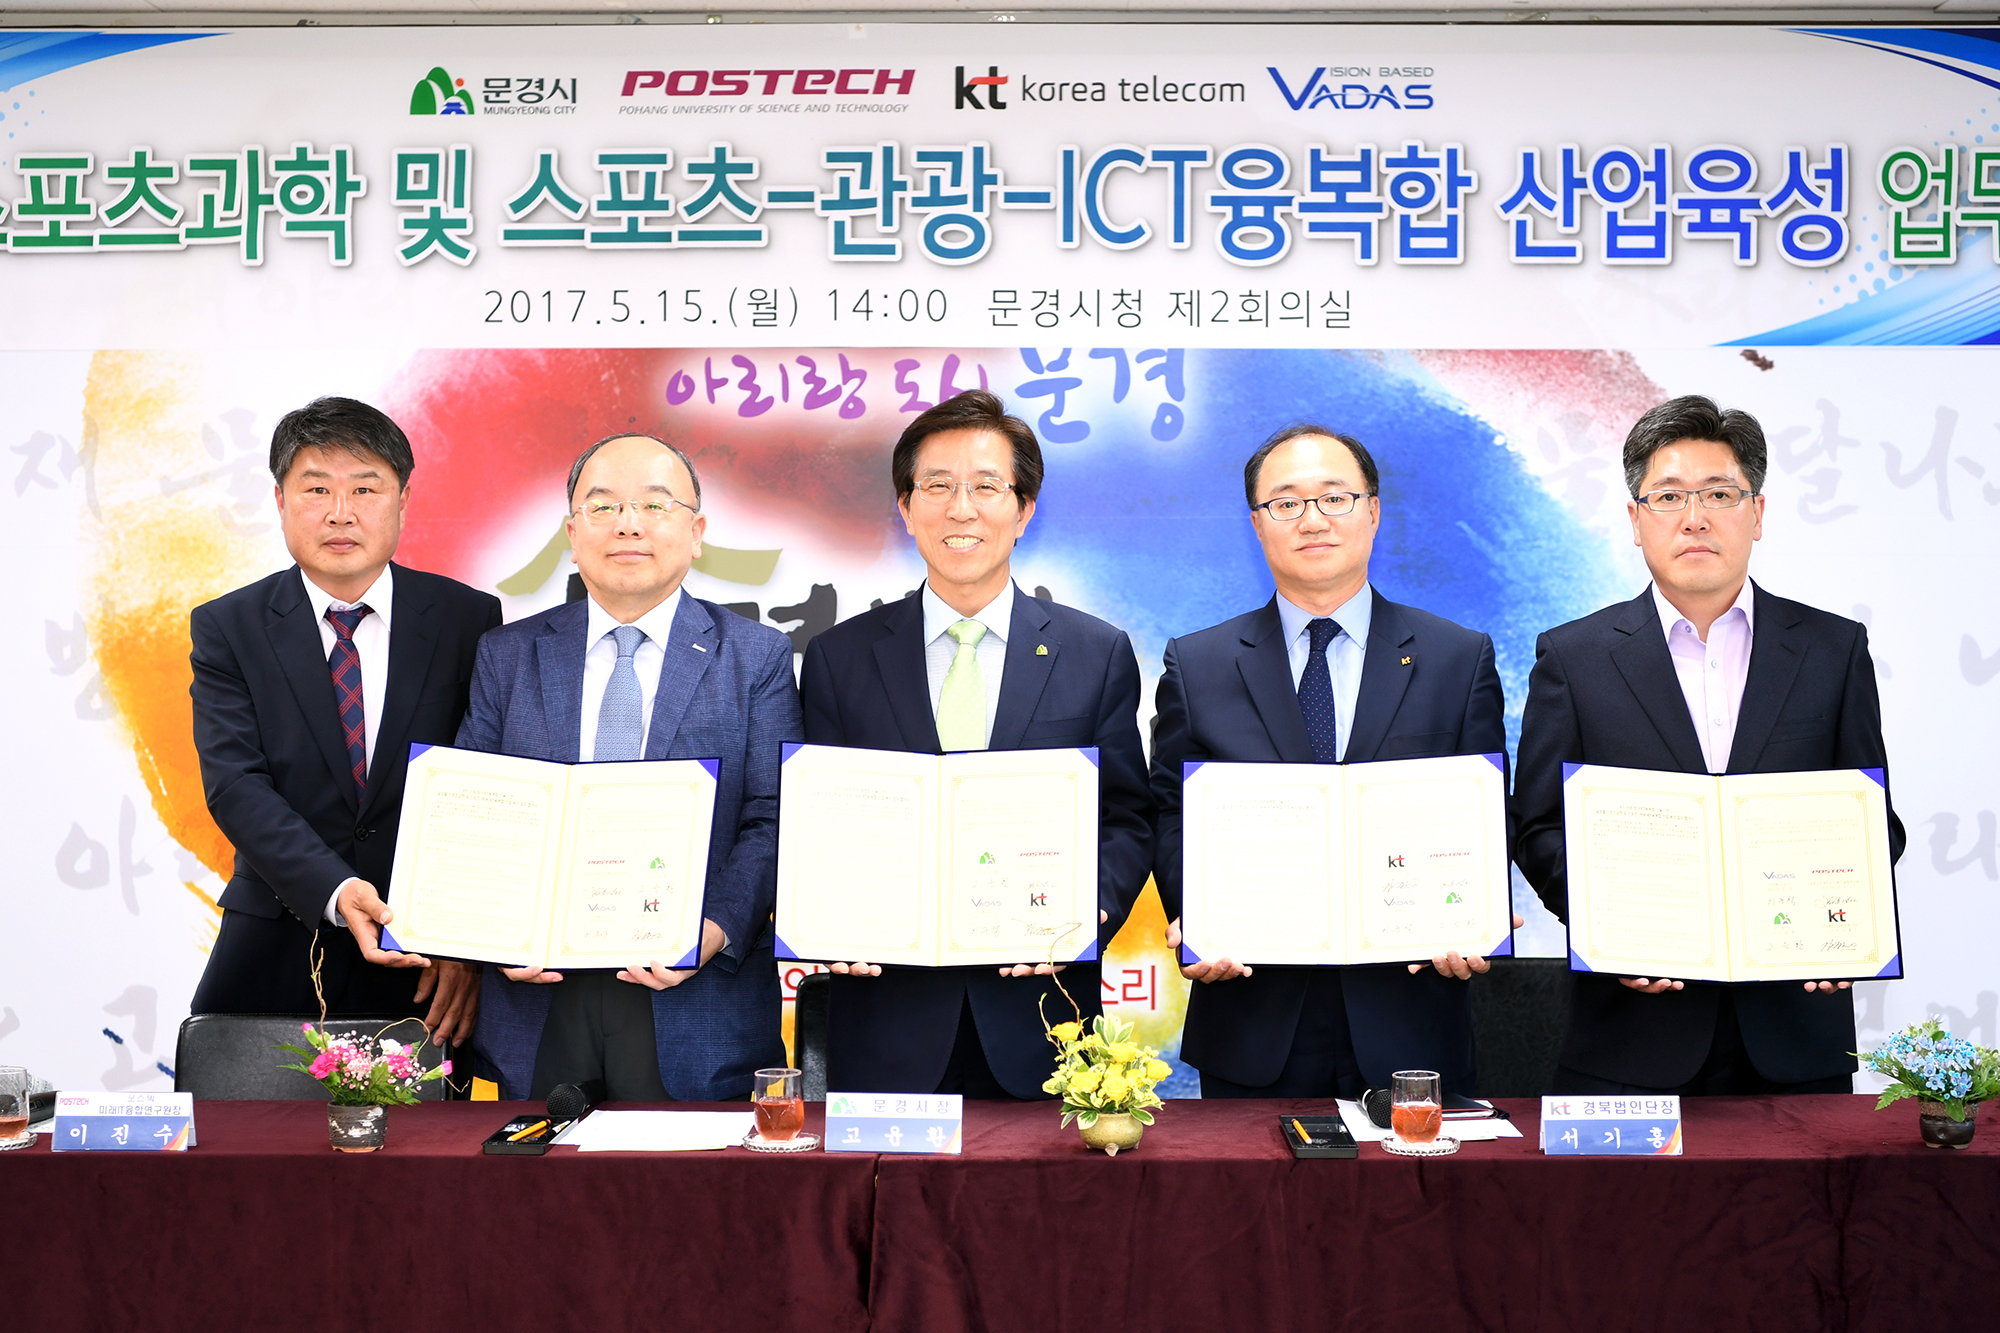 Global Sports Science Fostering Agreement between Mungyeong City, POSTECH, KT, and Vadas